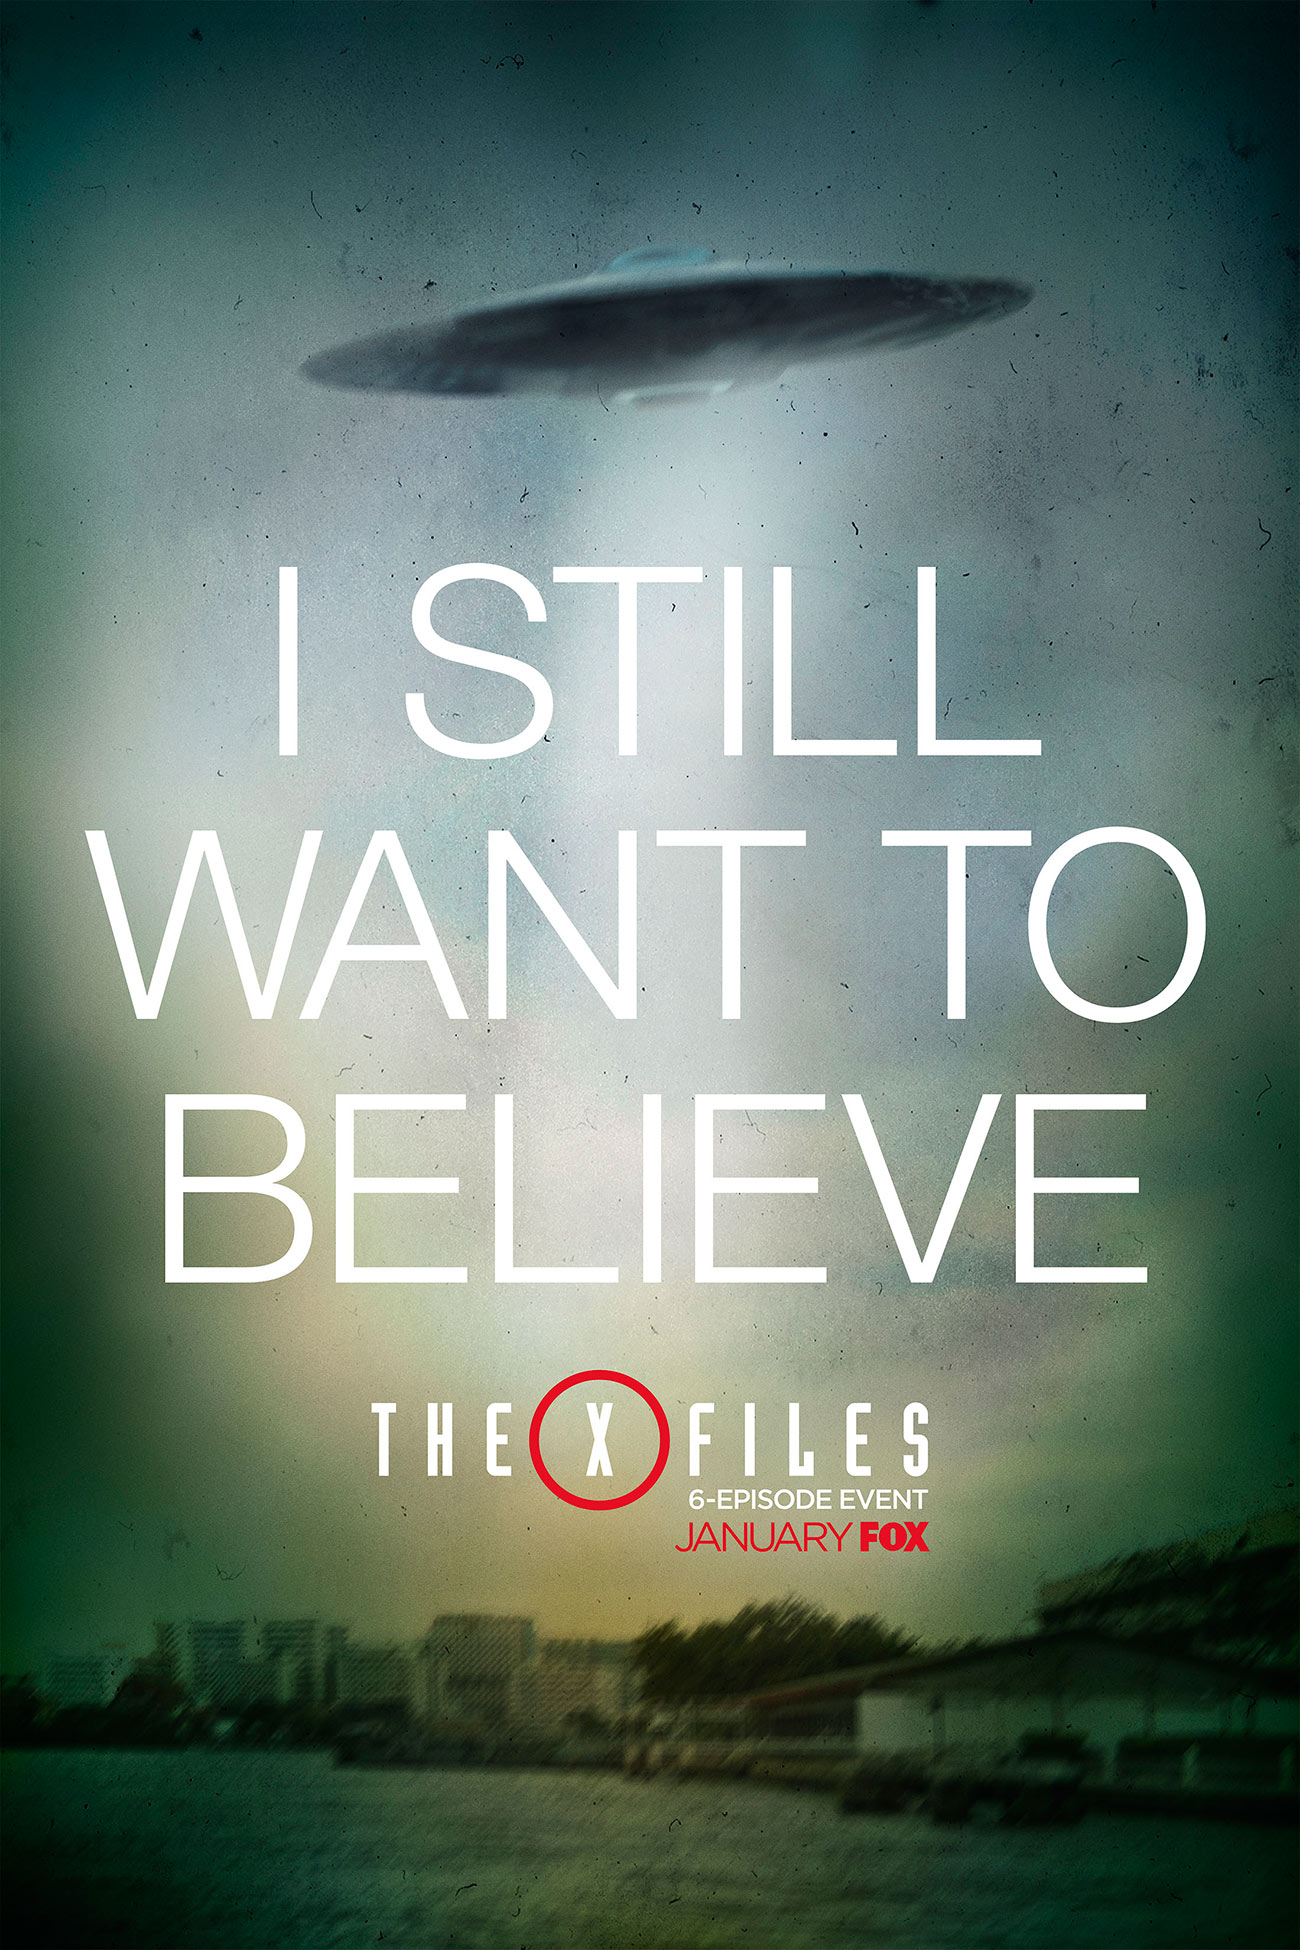 the-x-files-fox-2016-tv-images-a